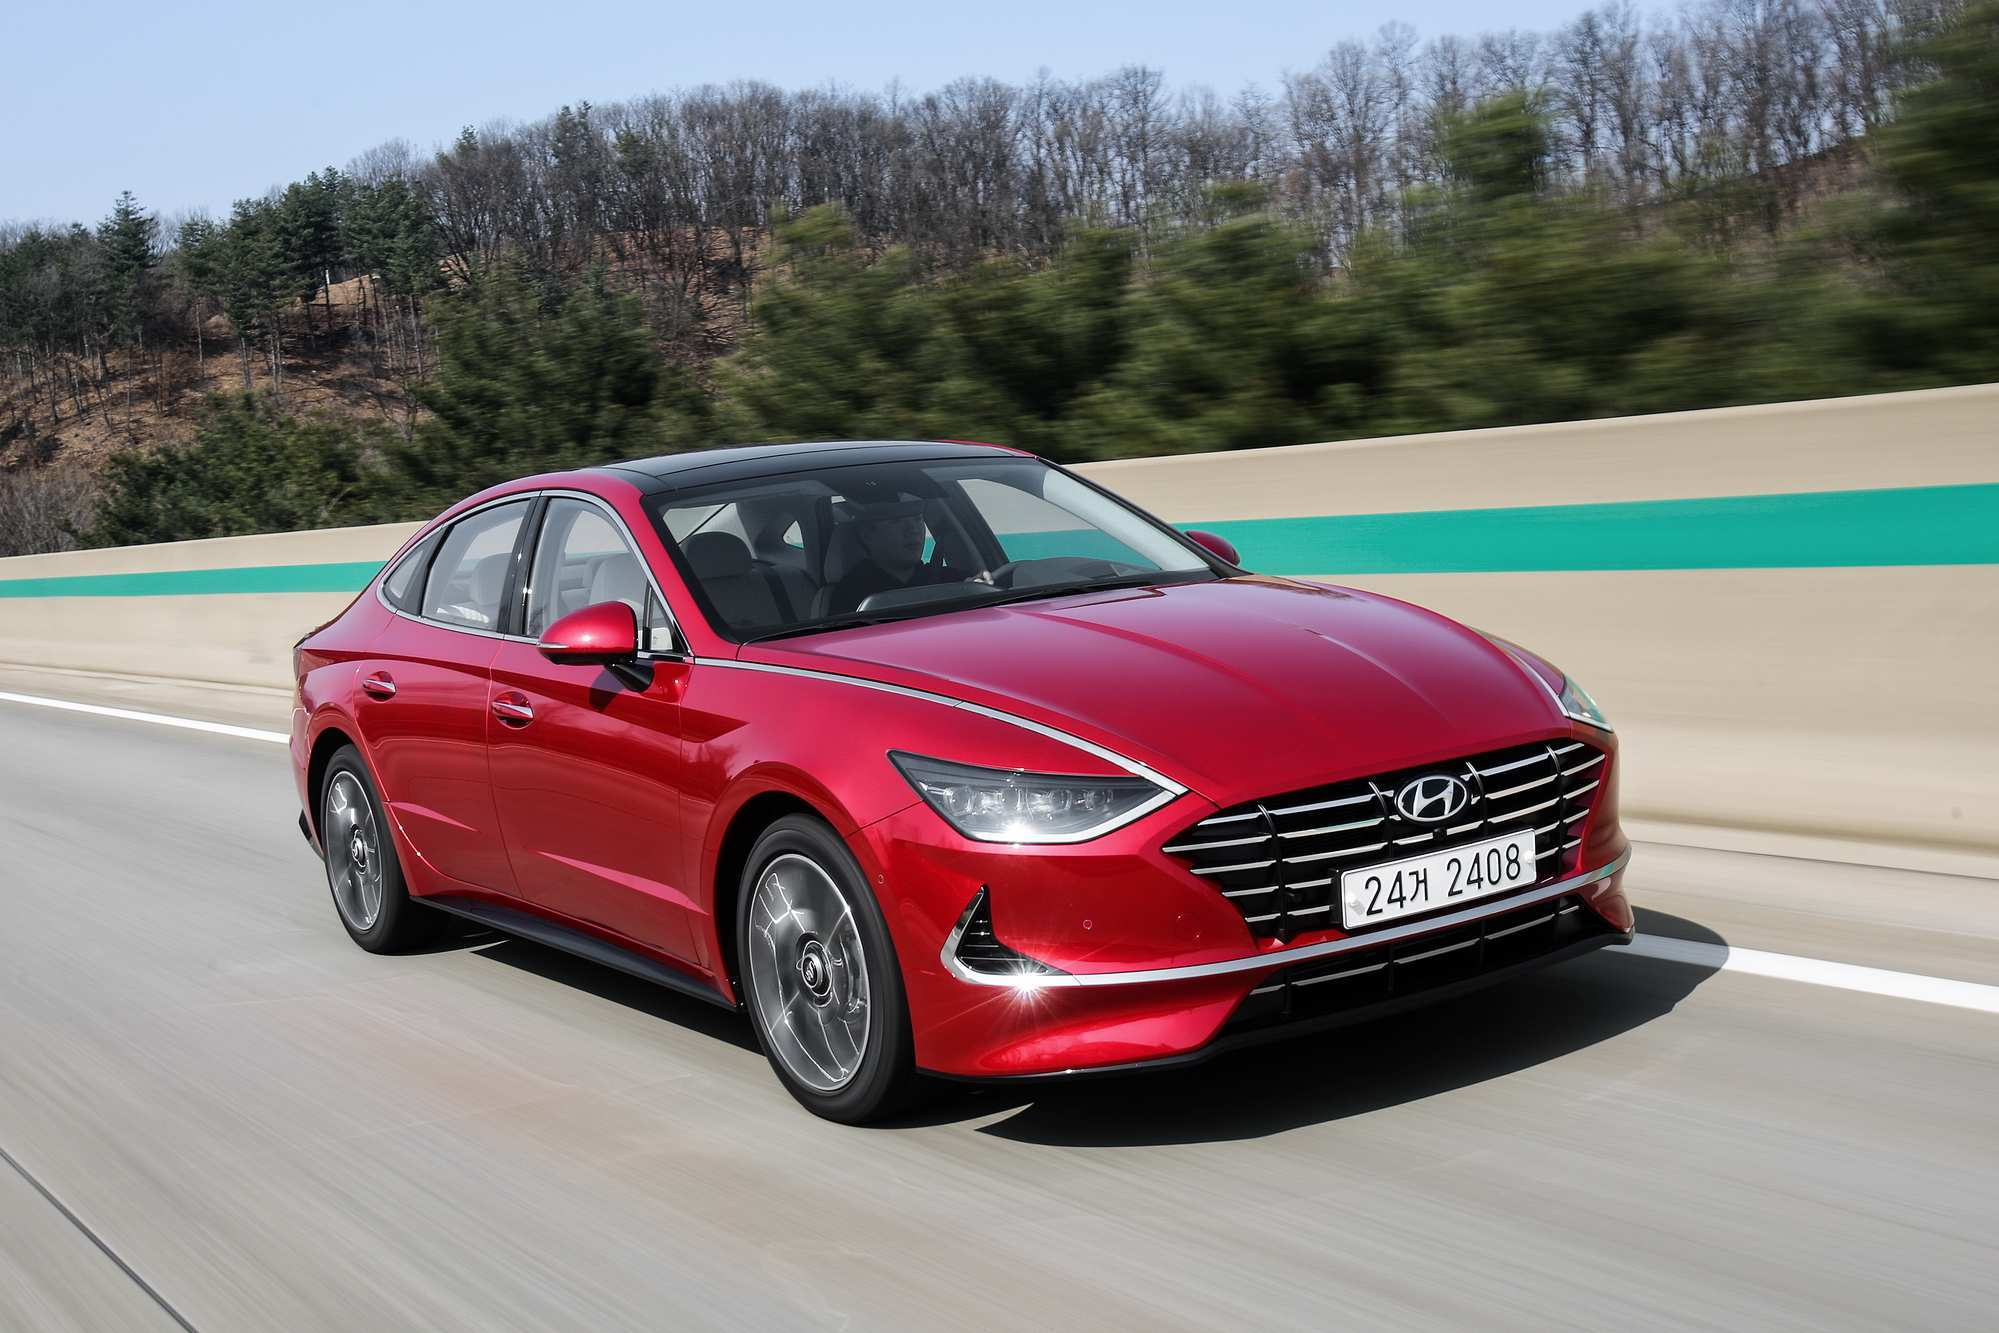 90 The Best 2020 Hyundai Sonata Review Redesign And Concept